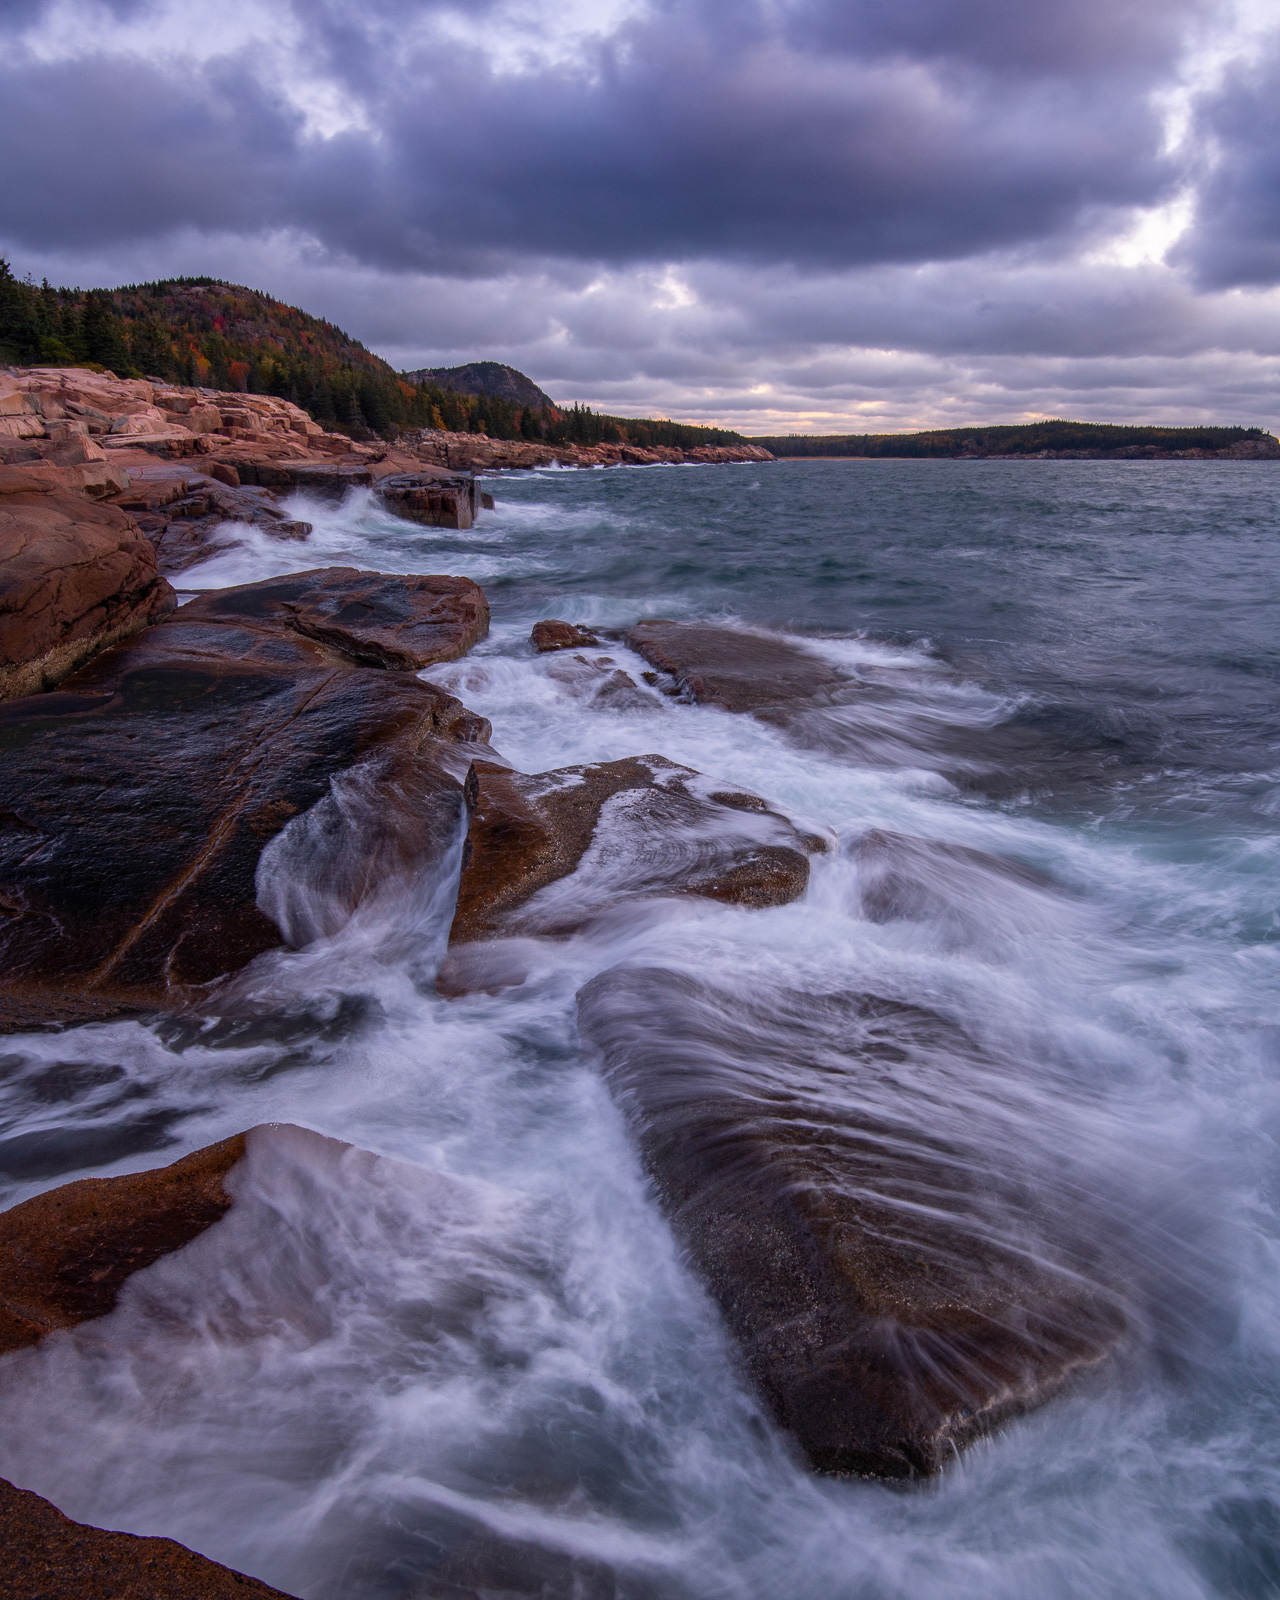 Storm clouds rolling in over the coastline of Acadia National Park at sunrise.